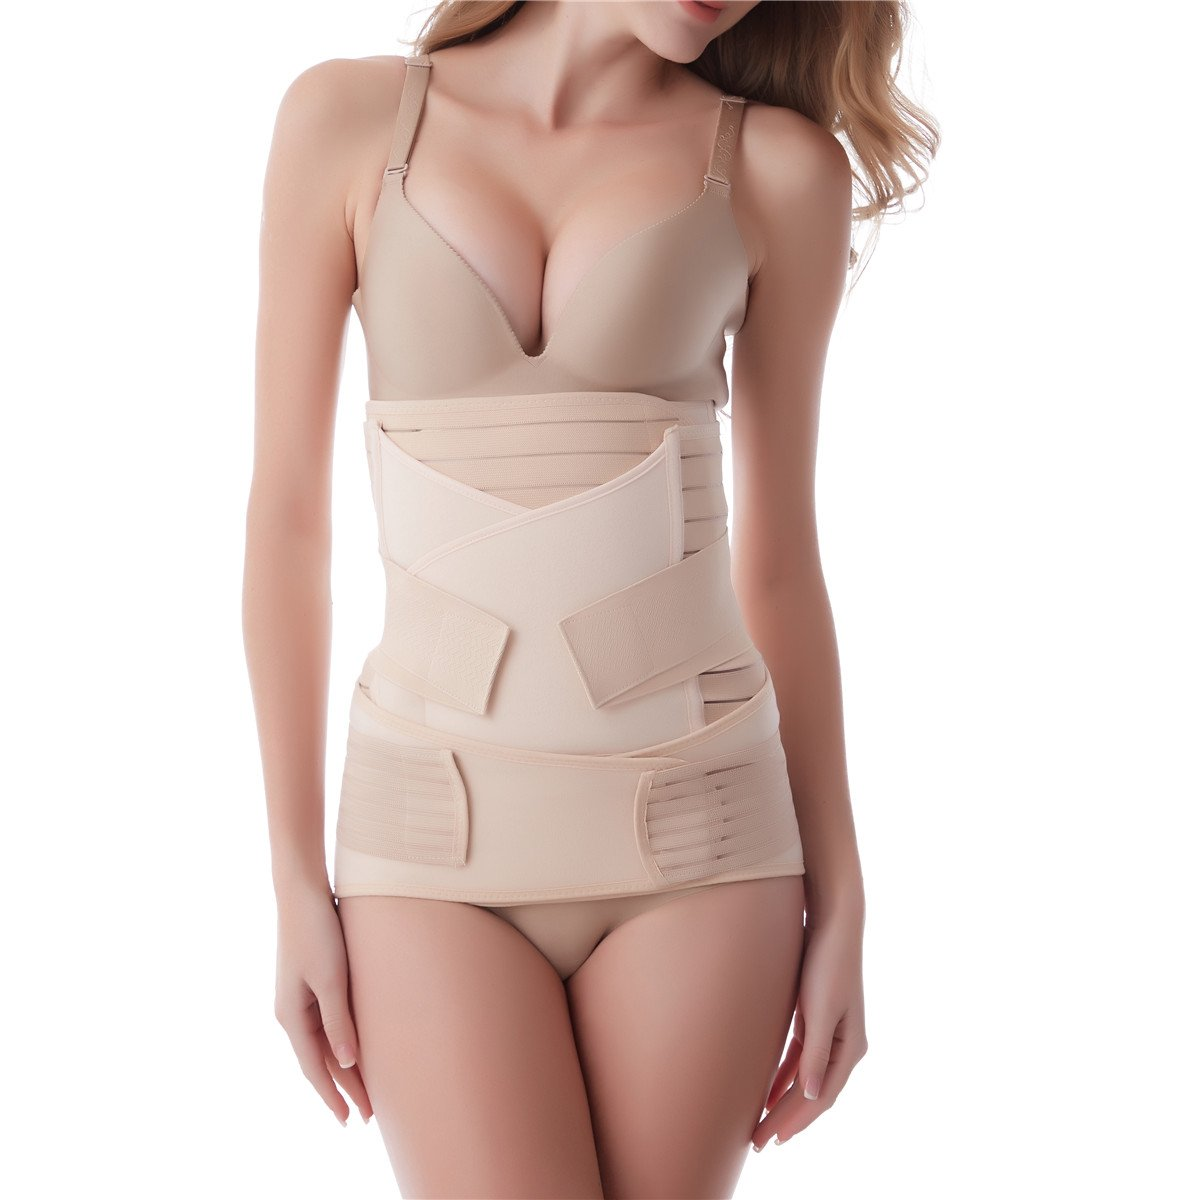 Aigori 3 in 1 Postpartum Support Recovery Belly Waist Pelvis Belt C Section Recovery Belt Body Shaper Postnatal Shapewear